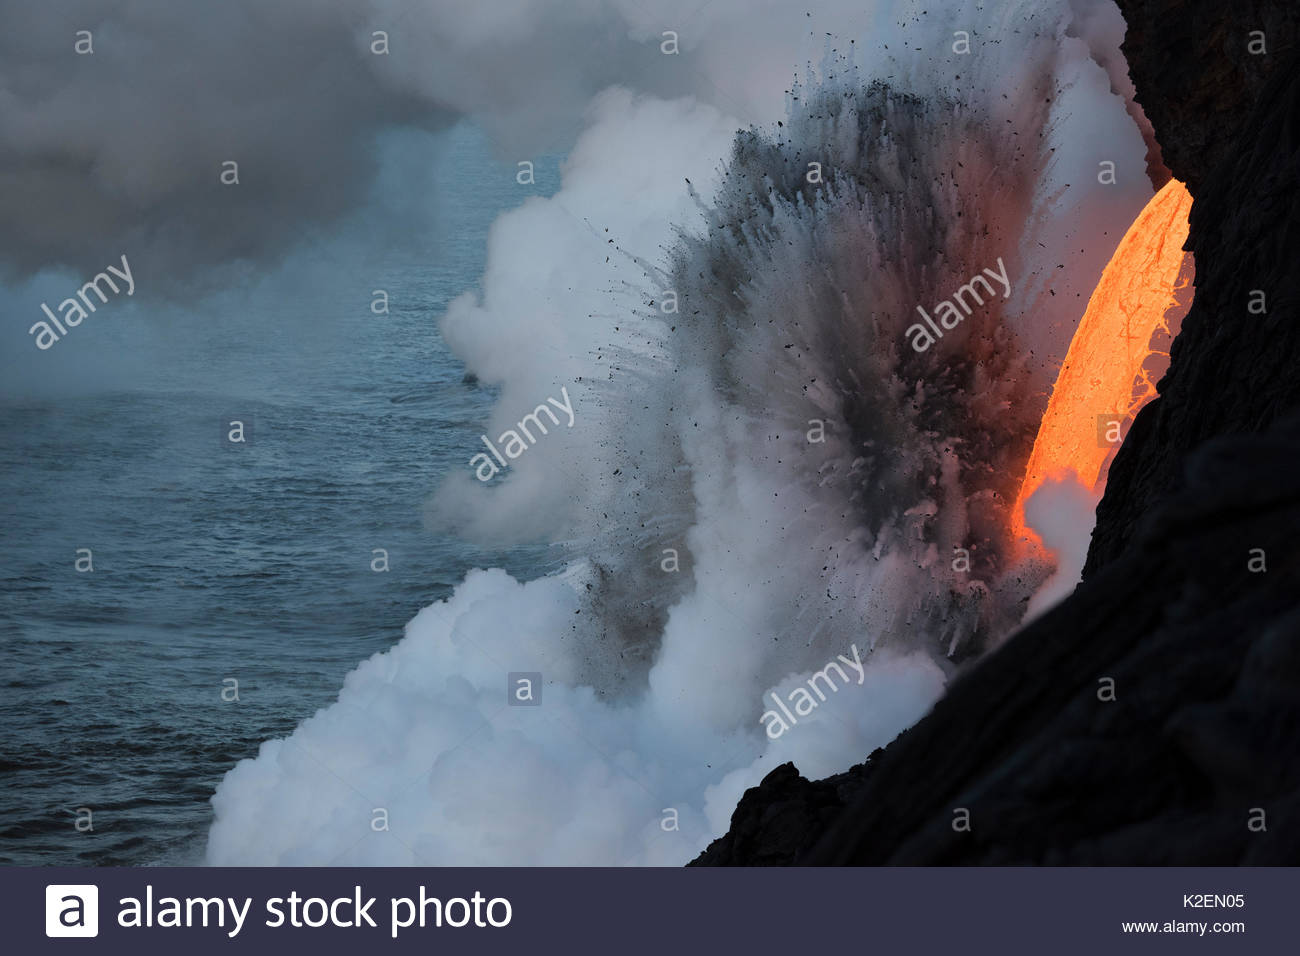 Hot lava from the 61G flow from Kilauea Volcano entering the ocean from the open end of a lava tube at the Kamokuna entry in Hawaii Volcanoes National Park, producing a great cloud of steam and violent explosions that throw hot pumice stones high into the air, Kalapana, Puna, Hawaii. January 2017. - Stock Image